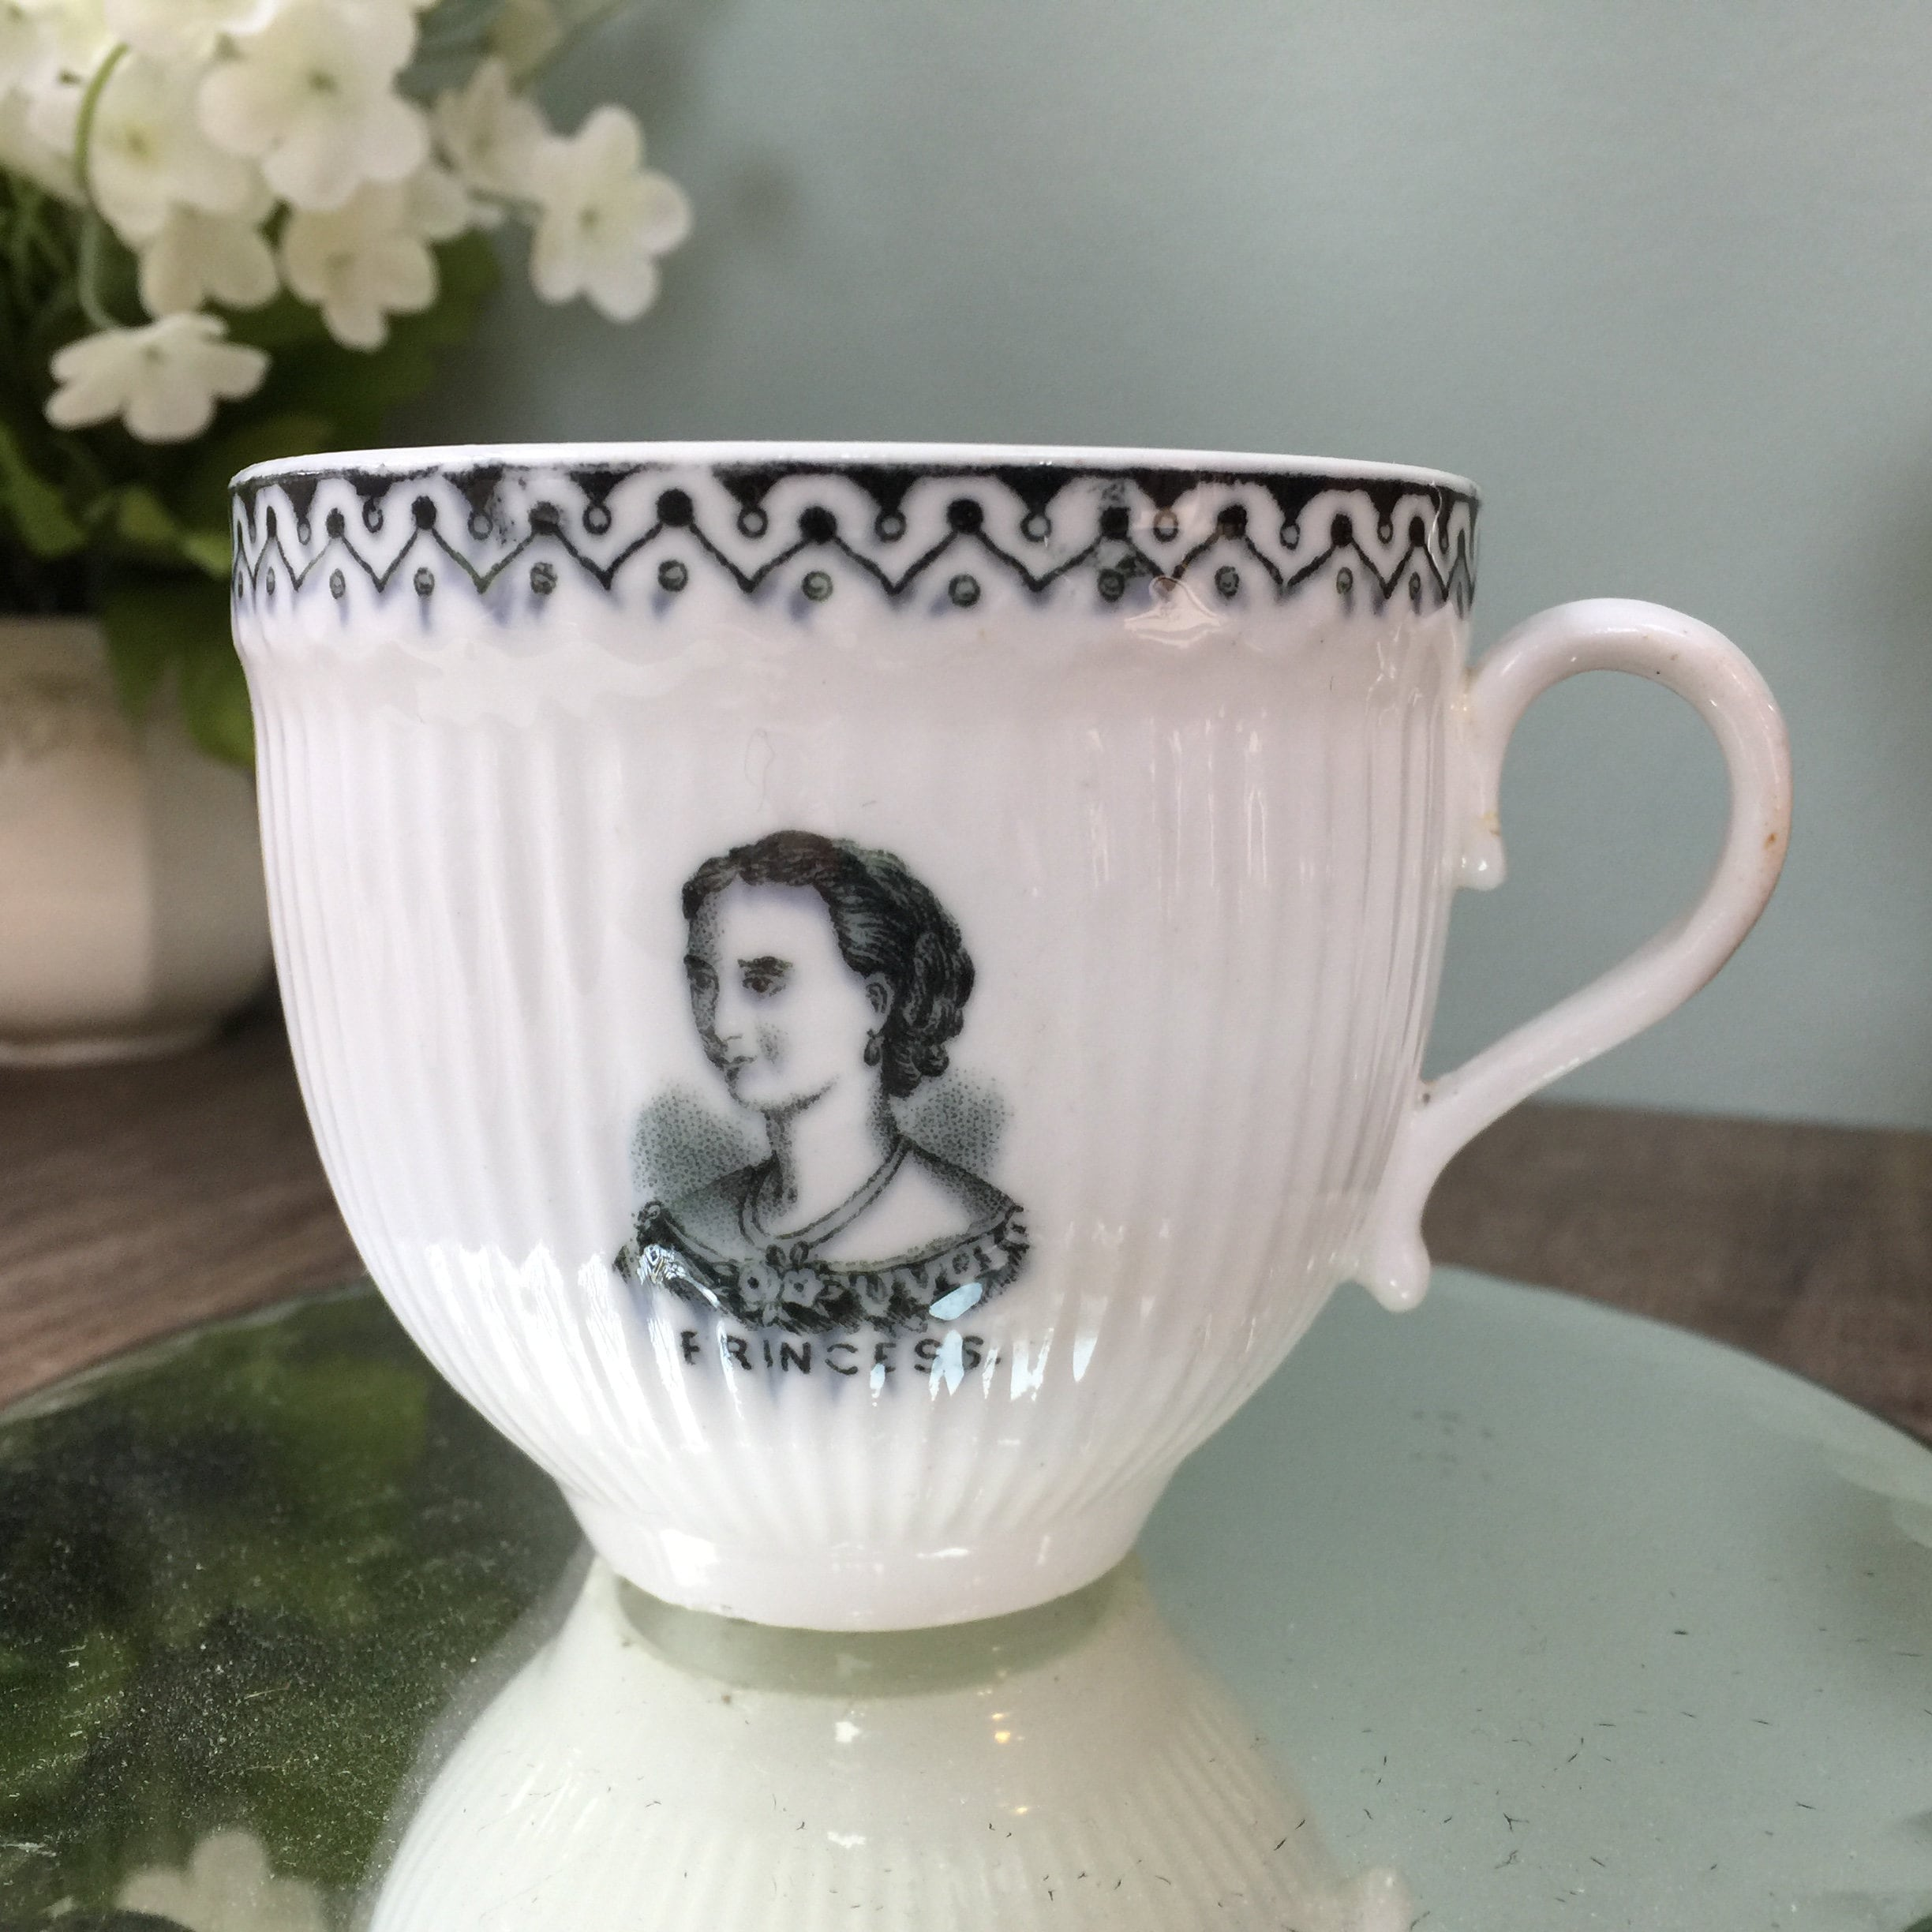 Antique English Royalty Cup, Prince and Princess